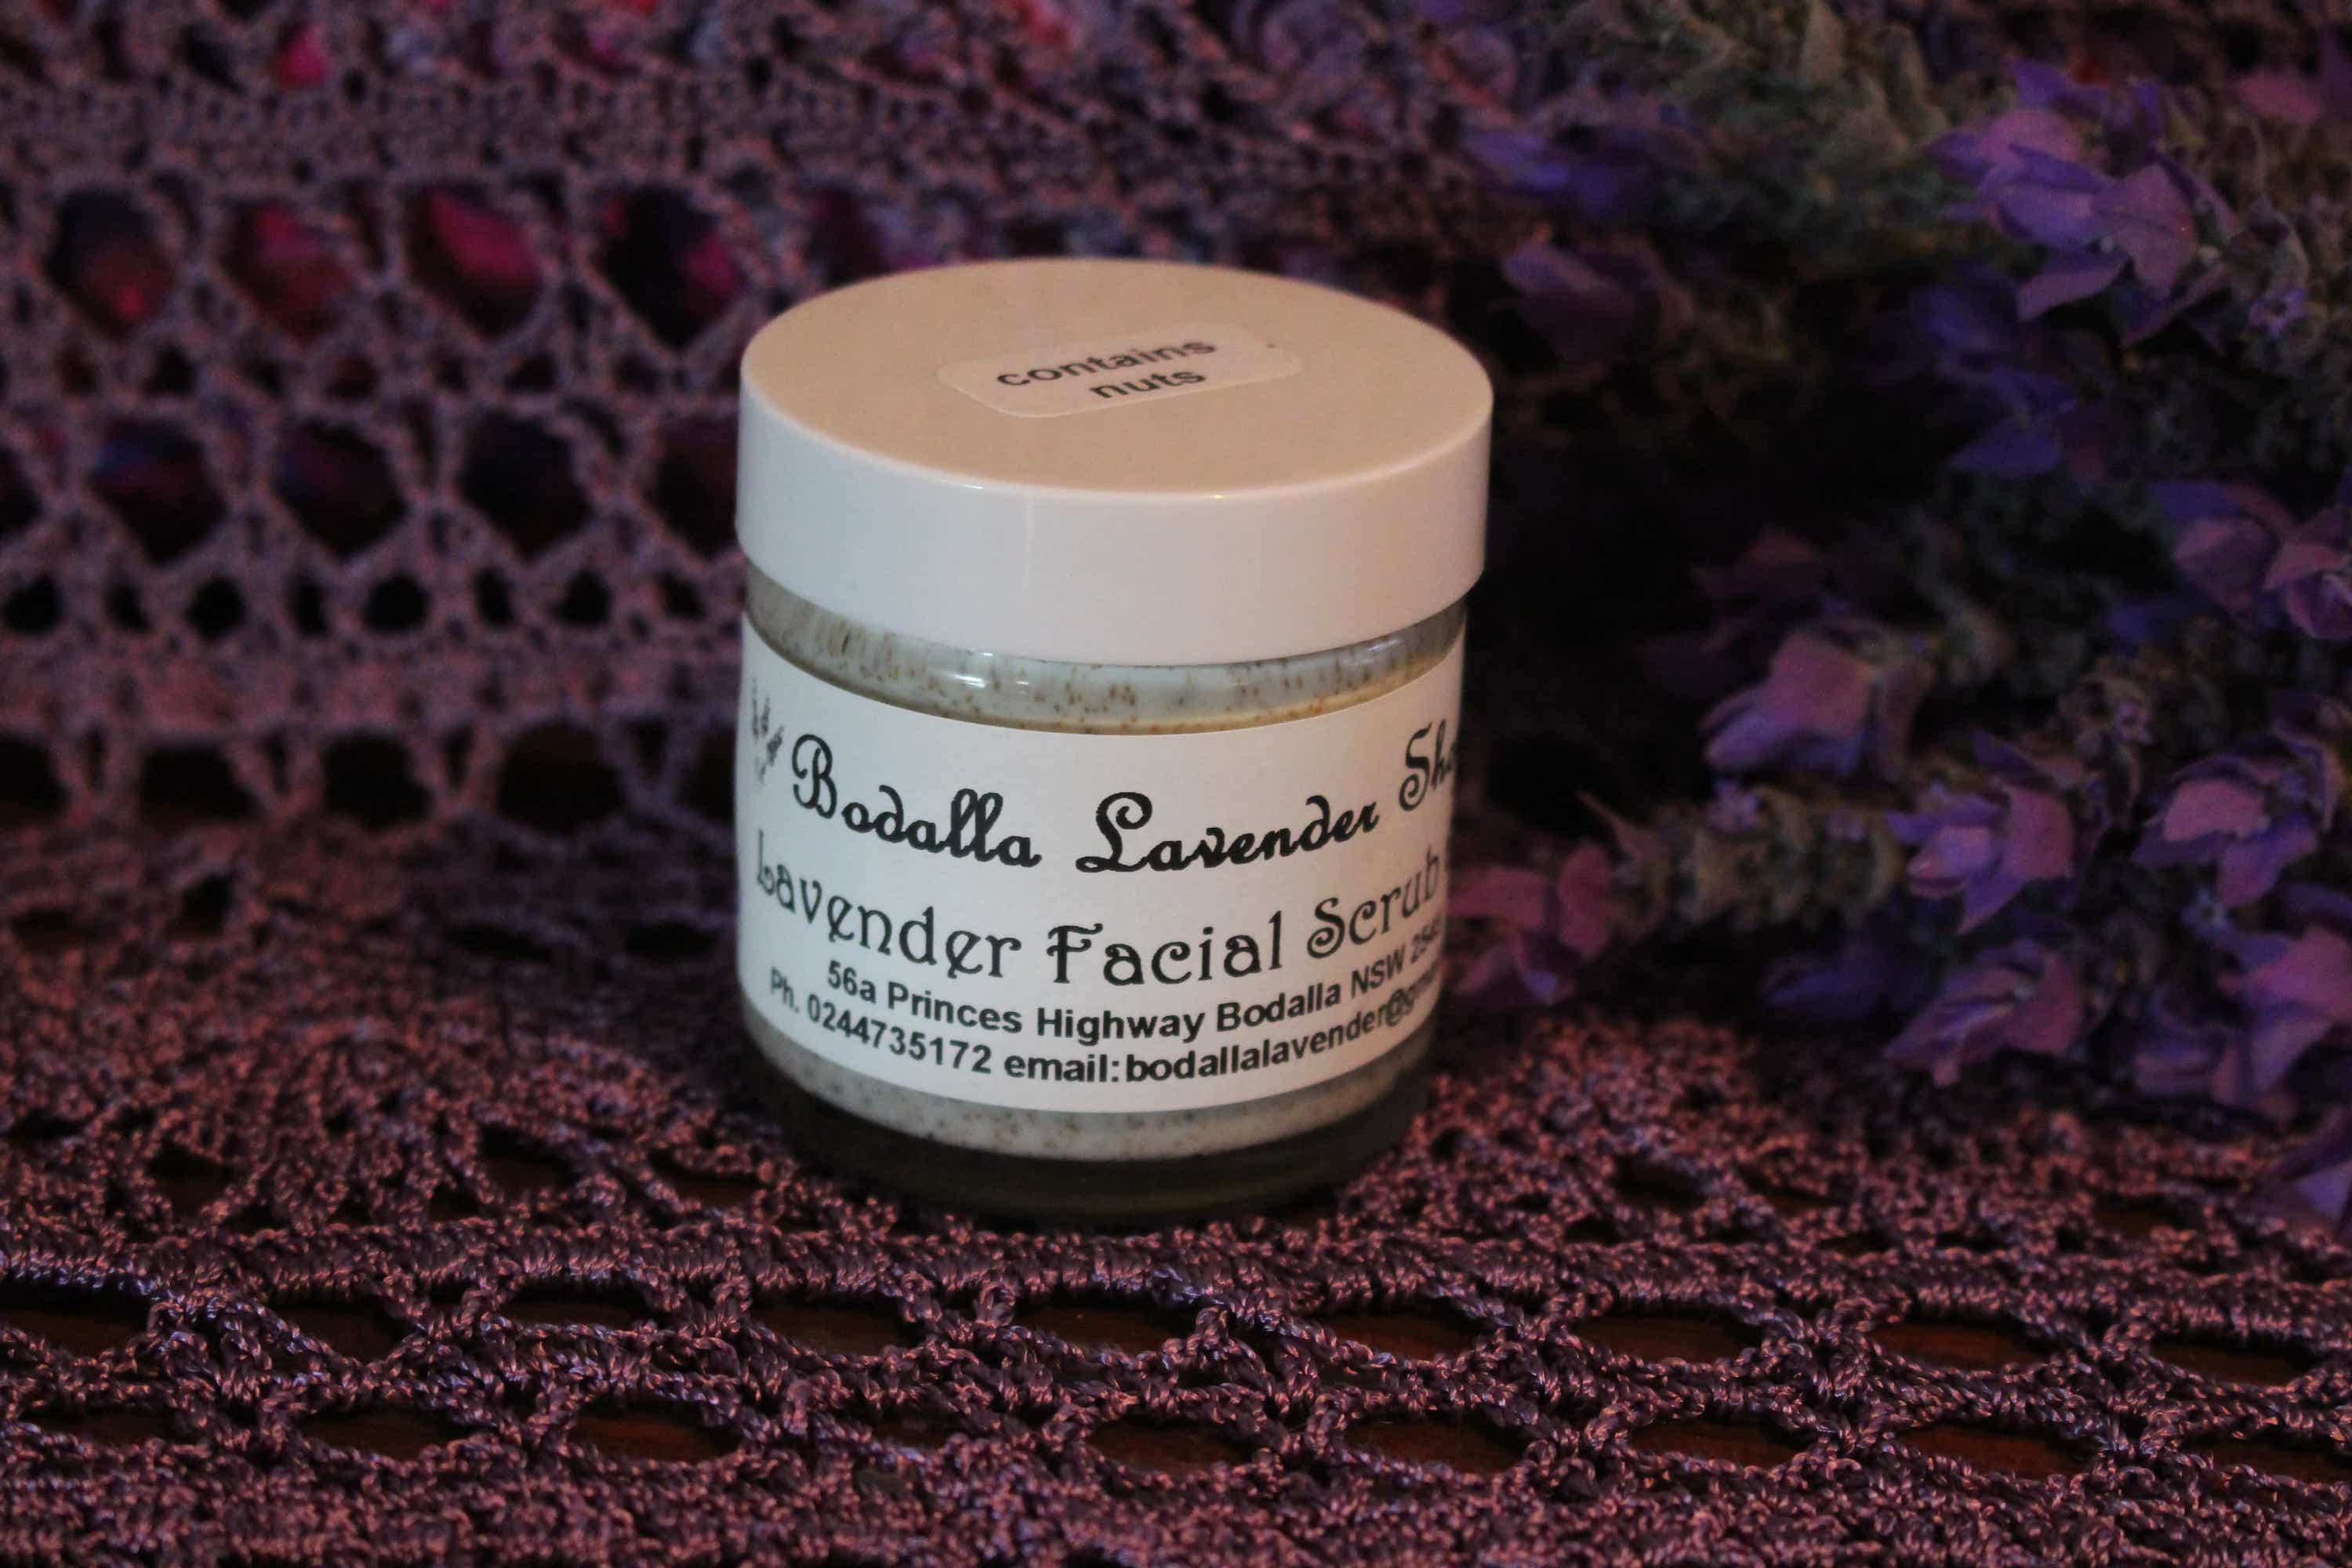 Photograph of an Lavender Facial Scrub  product